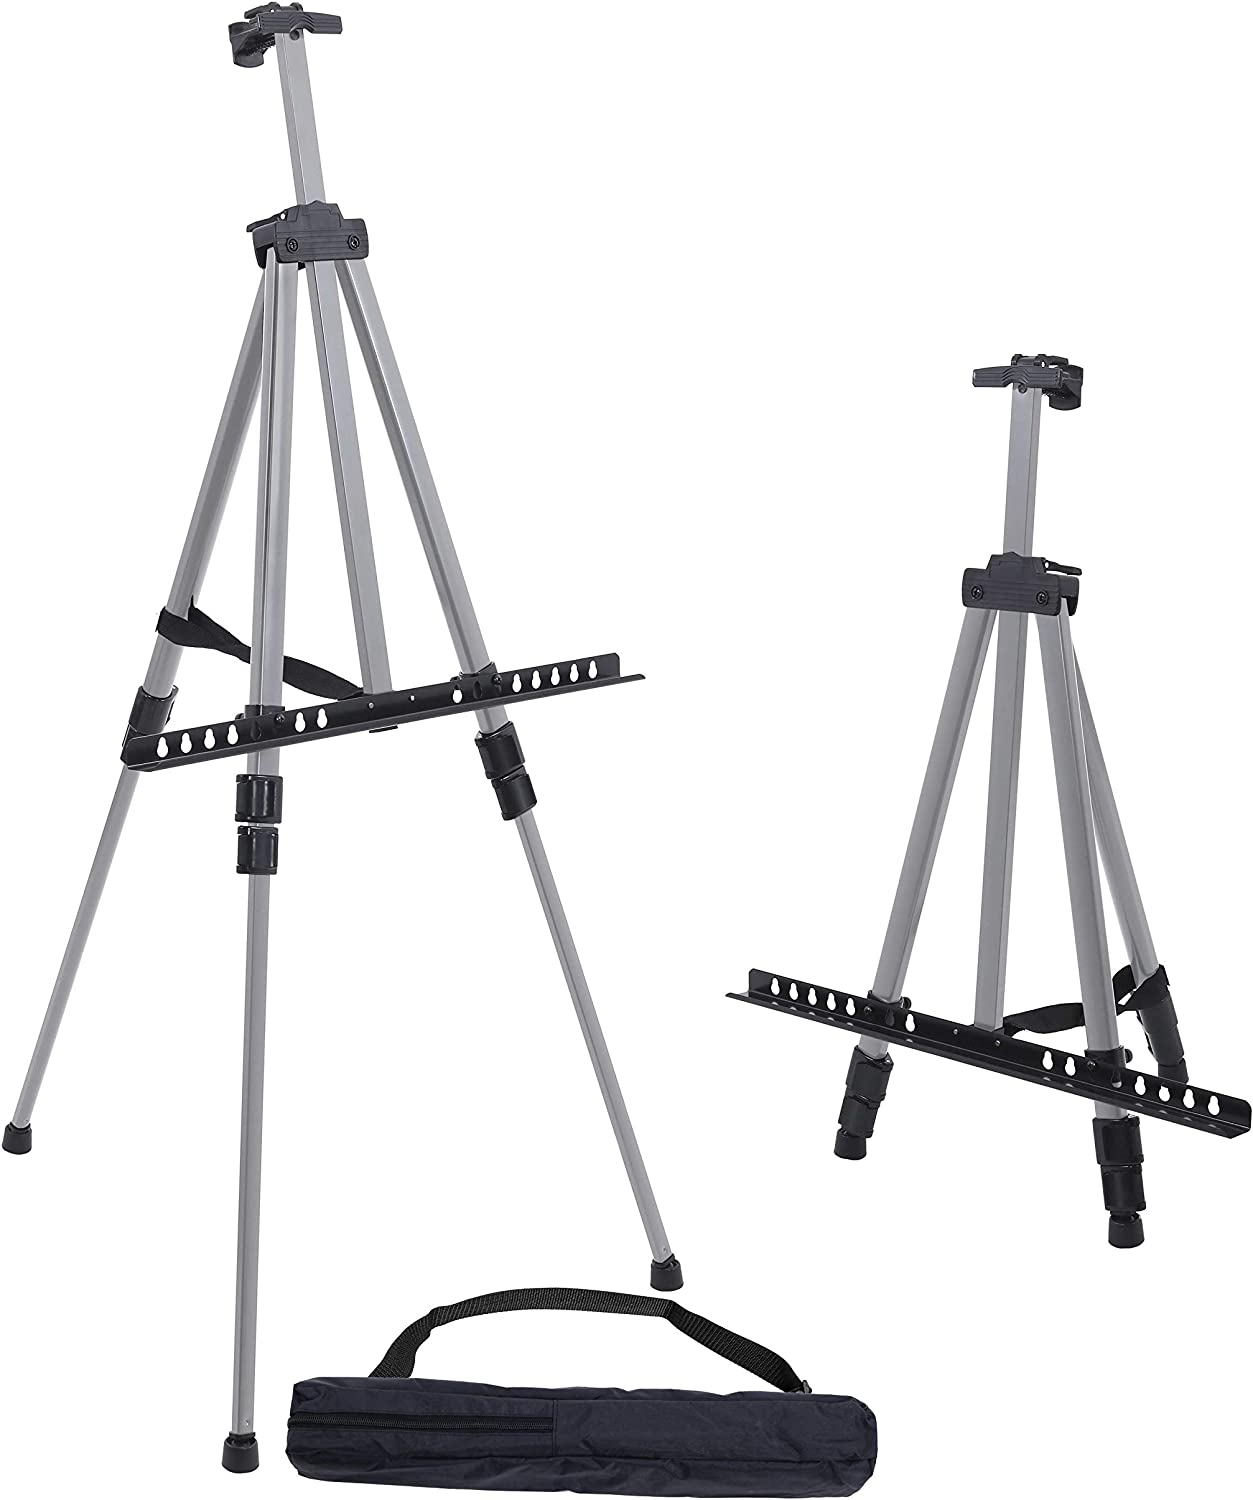 Level Aluminum Tripod Tripod Color : Silver